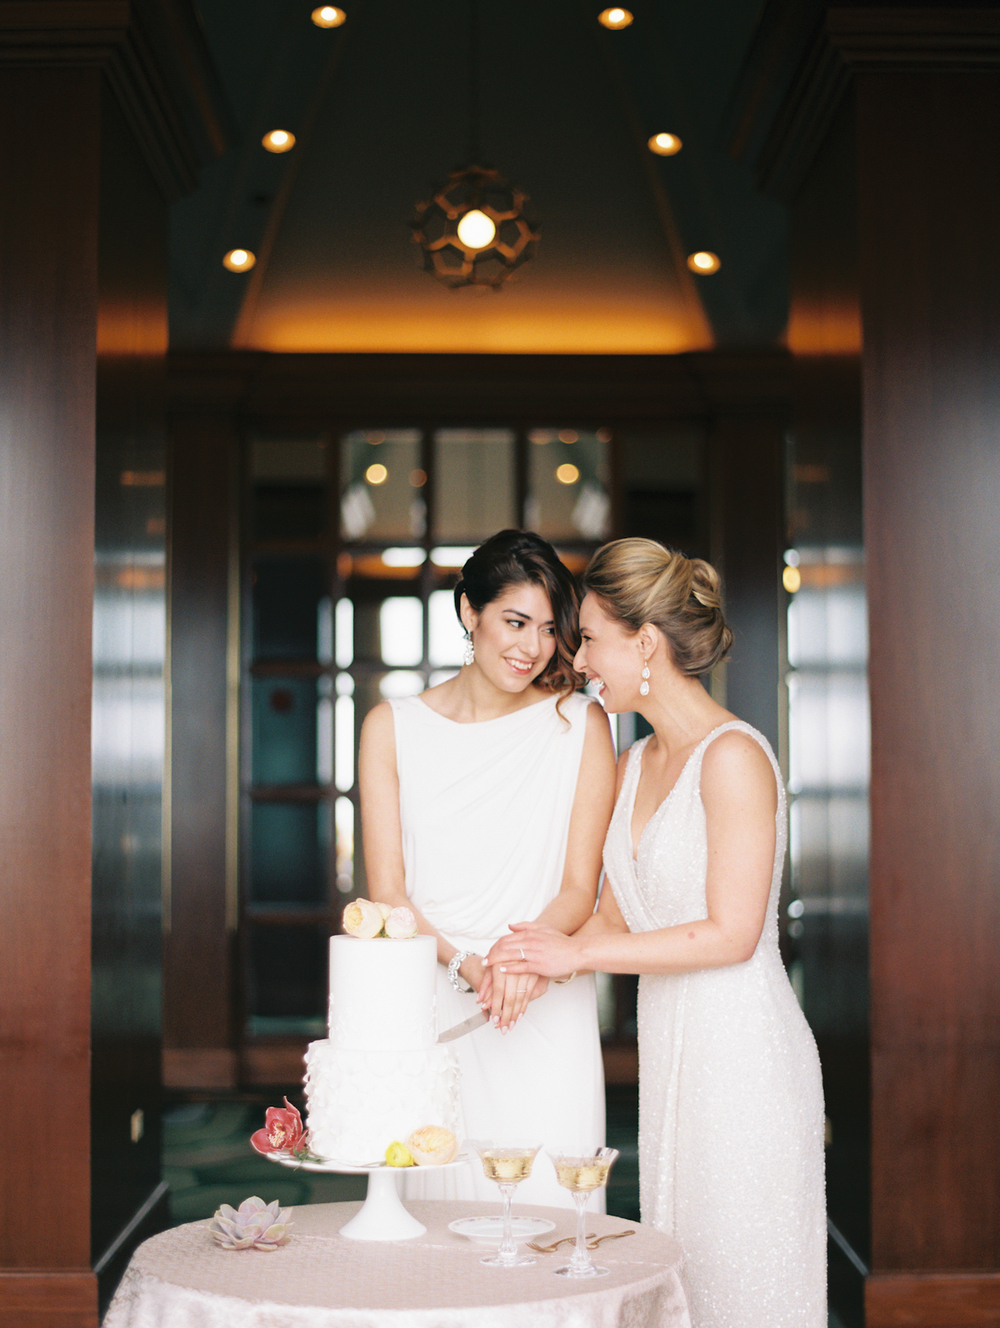 Clover Events | Intimate Elopement | Photos by Kristin La Voie Photography